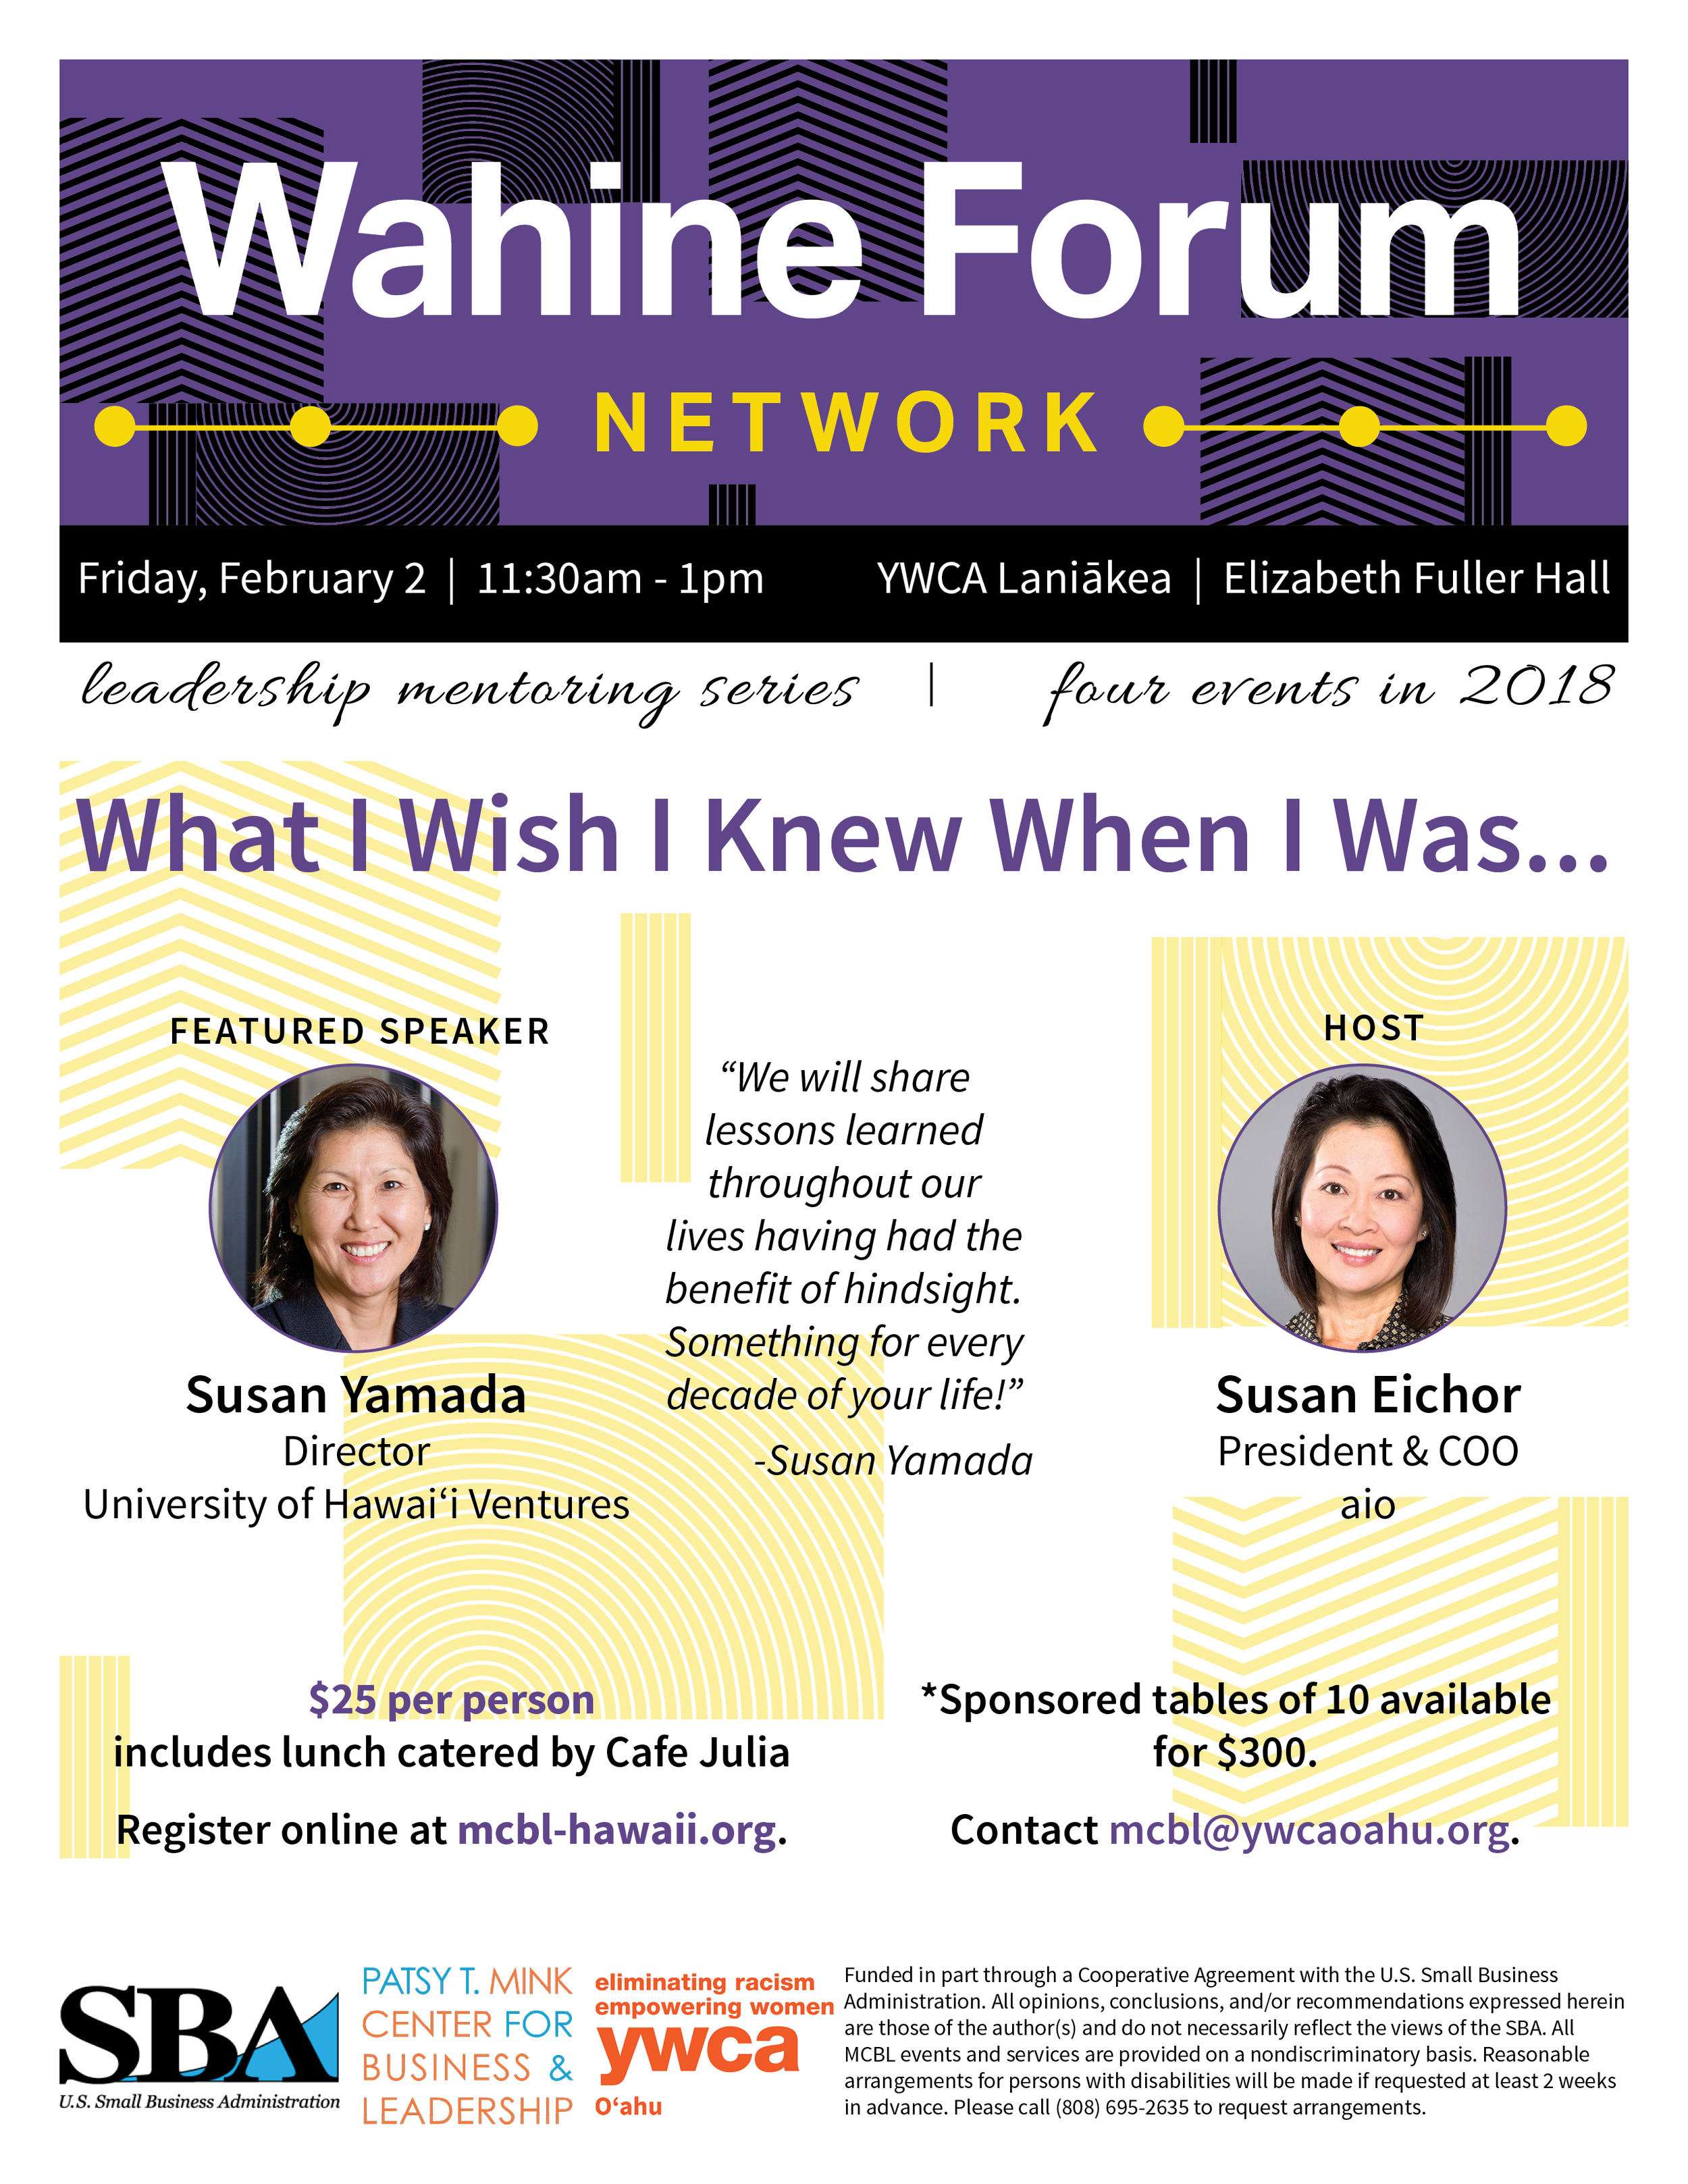 Wahine Forum Network - What I Wish I Knew When I Was... Final.png